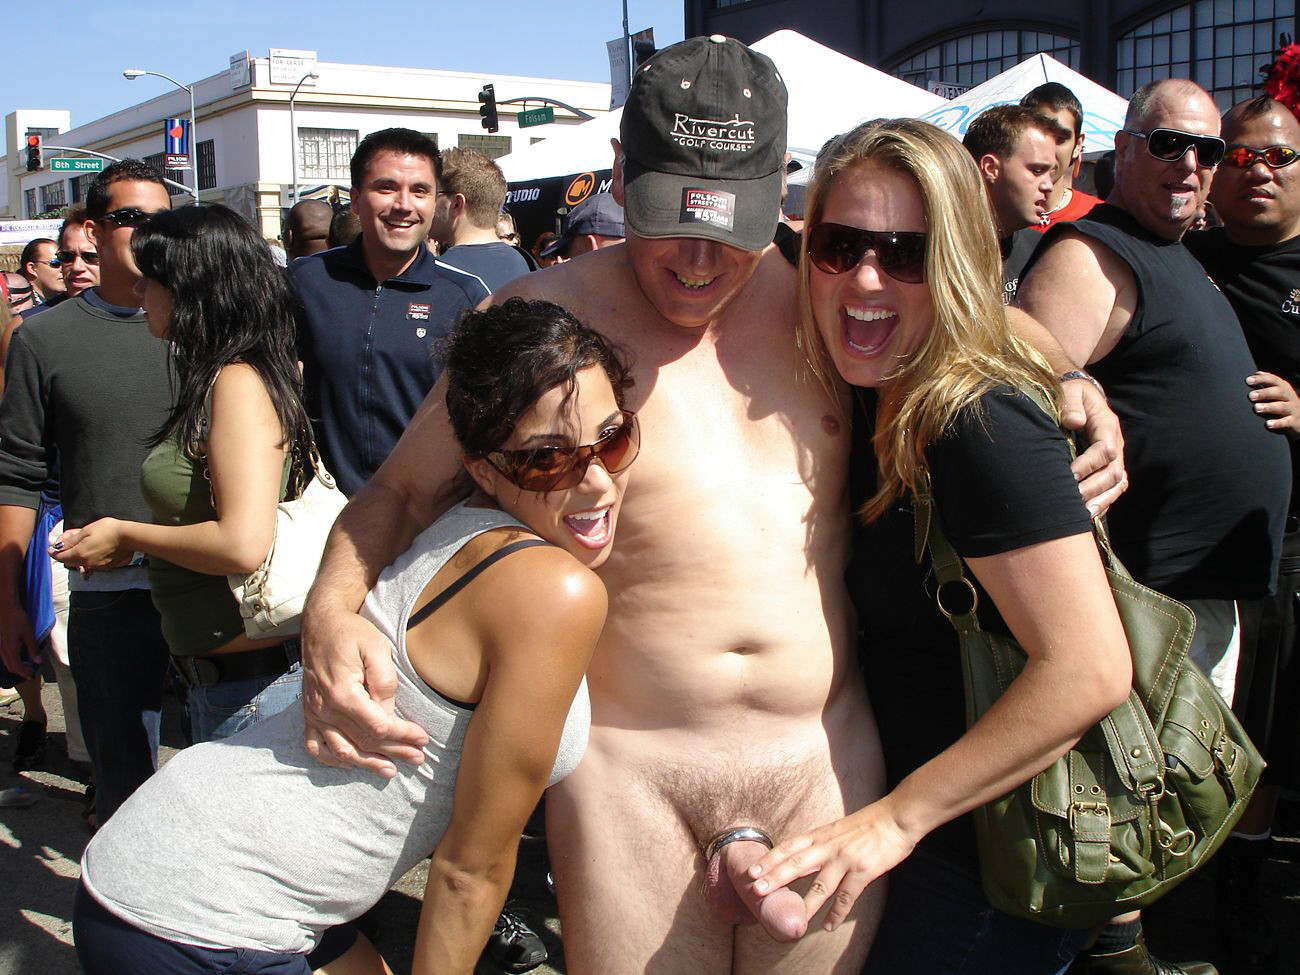 cfnm street Shared by stumpy67 - Public Exhibitionism